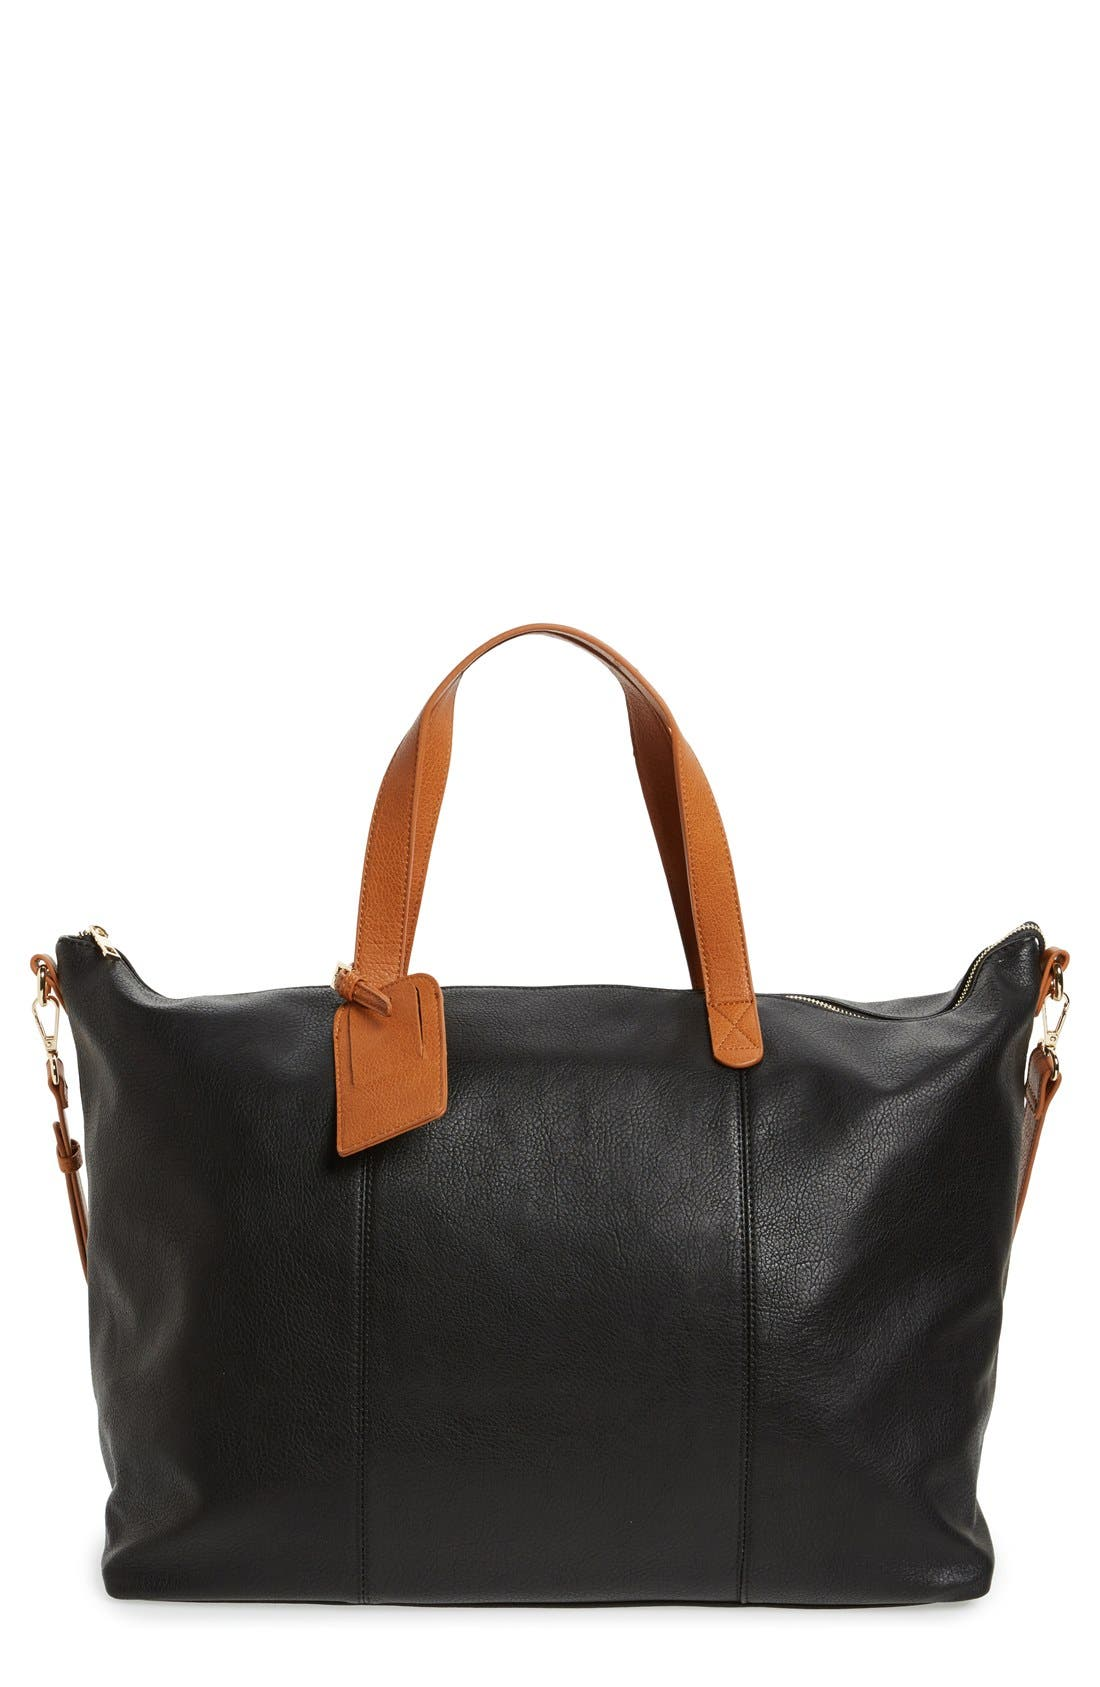 Candice Oversize Travel Tote,                             Main thumbnail 1, color,                             BLACK